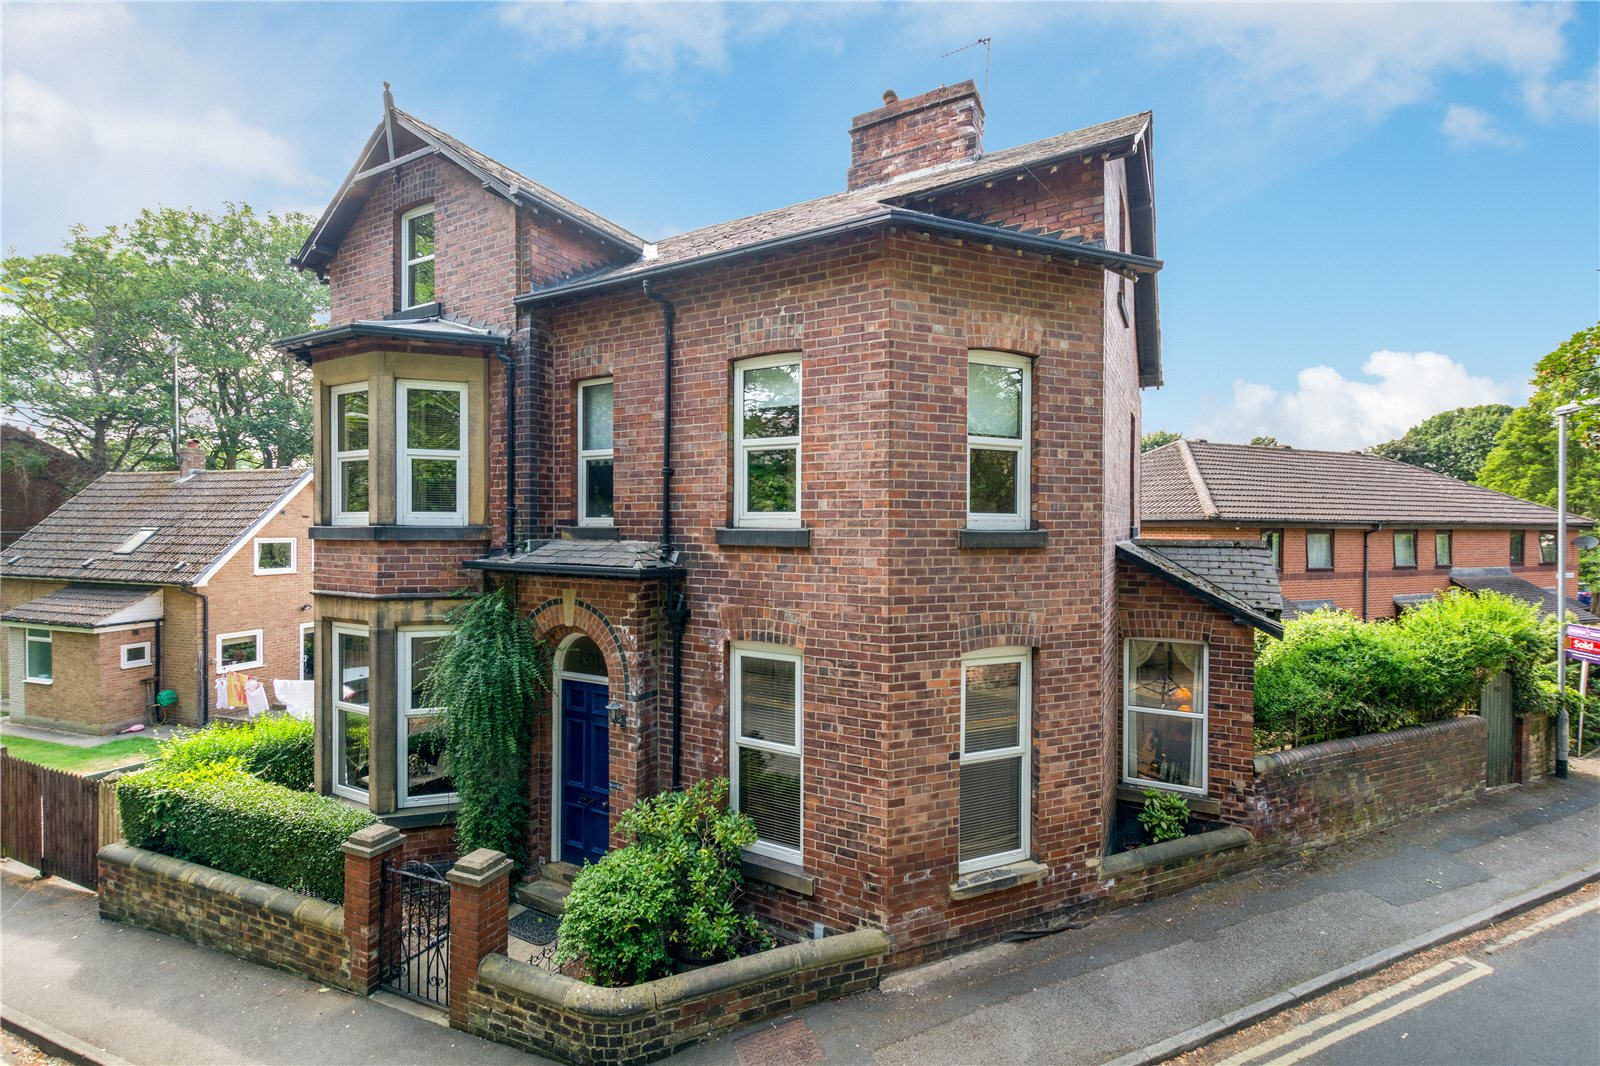 Property for sale in Wakefield, detached red brick home